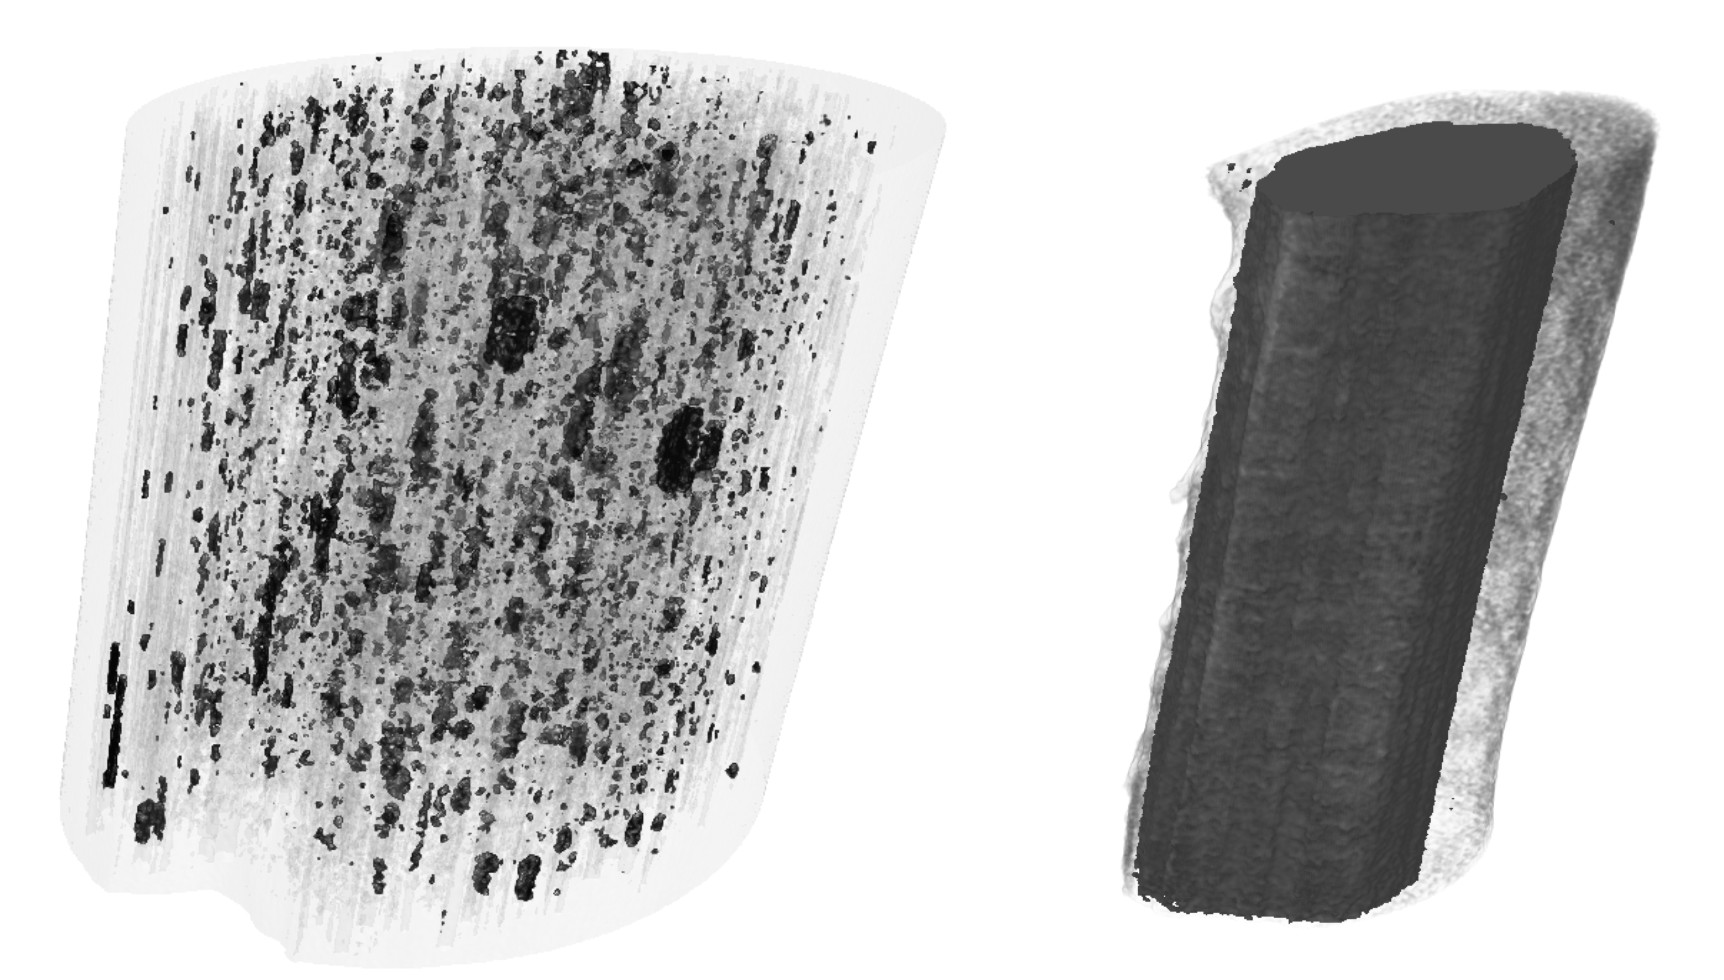 (top) 3D rendering of density distribution within carbon fibers, where high- and low-density regions are shown in black and in a semitransparent gray tone, respectively. On the left we show a fiber of 25 µm diameter, and on the right a 10 µm-diameter fiber made from a different precursor. Remarkable differences are observed between the two fibers.